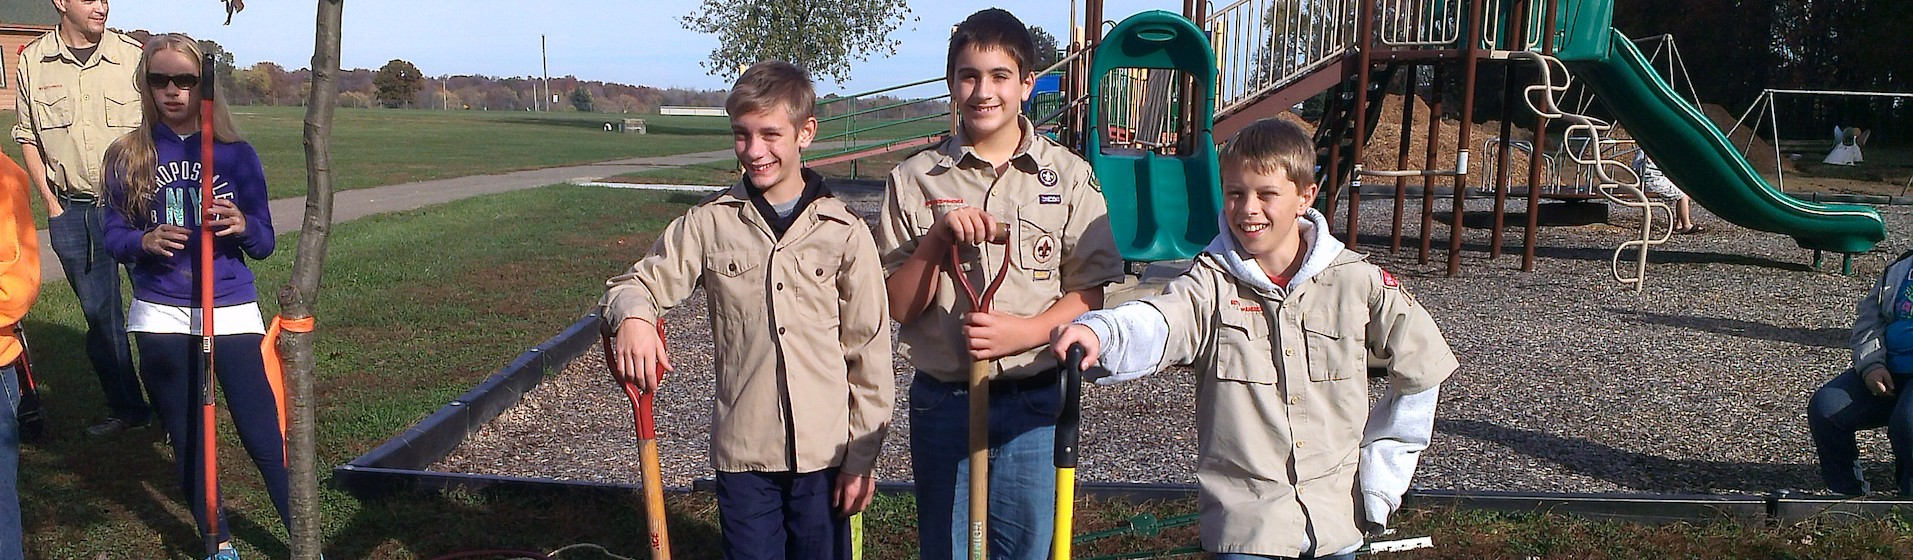 group of houston community champions kids fixing a playground